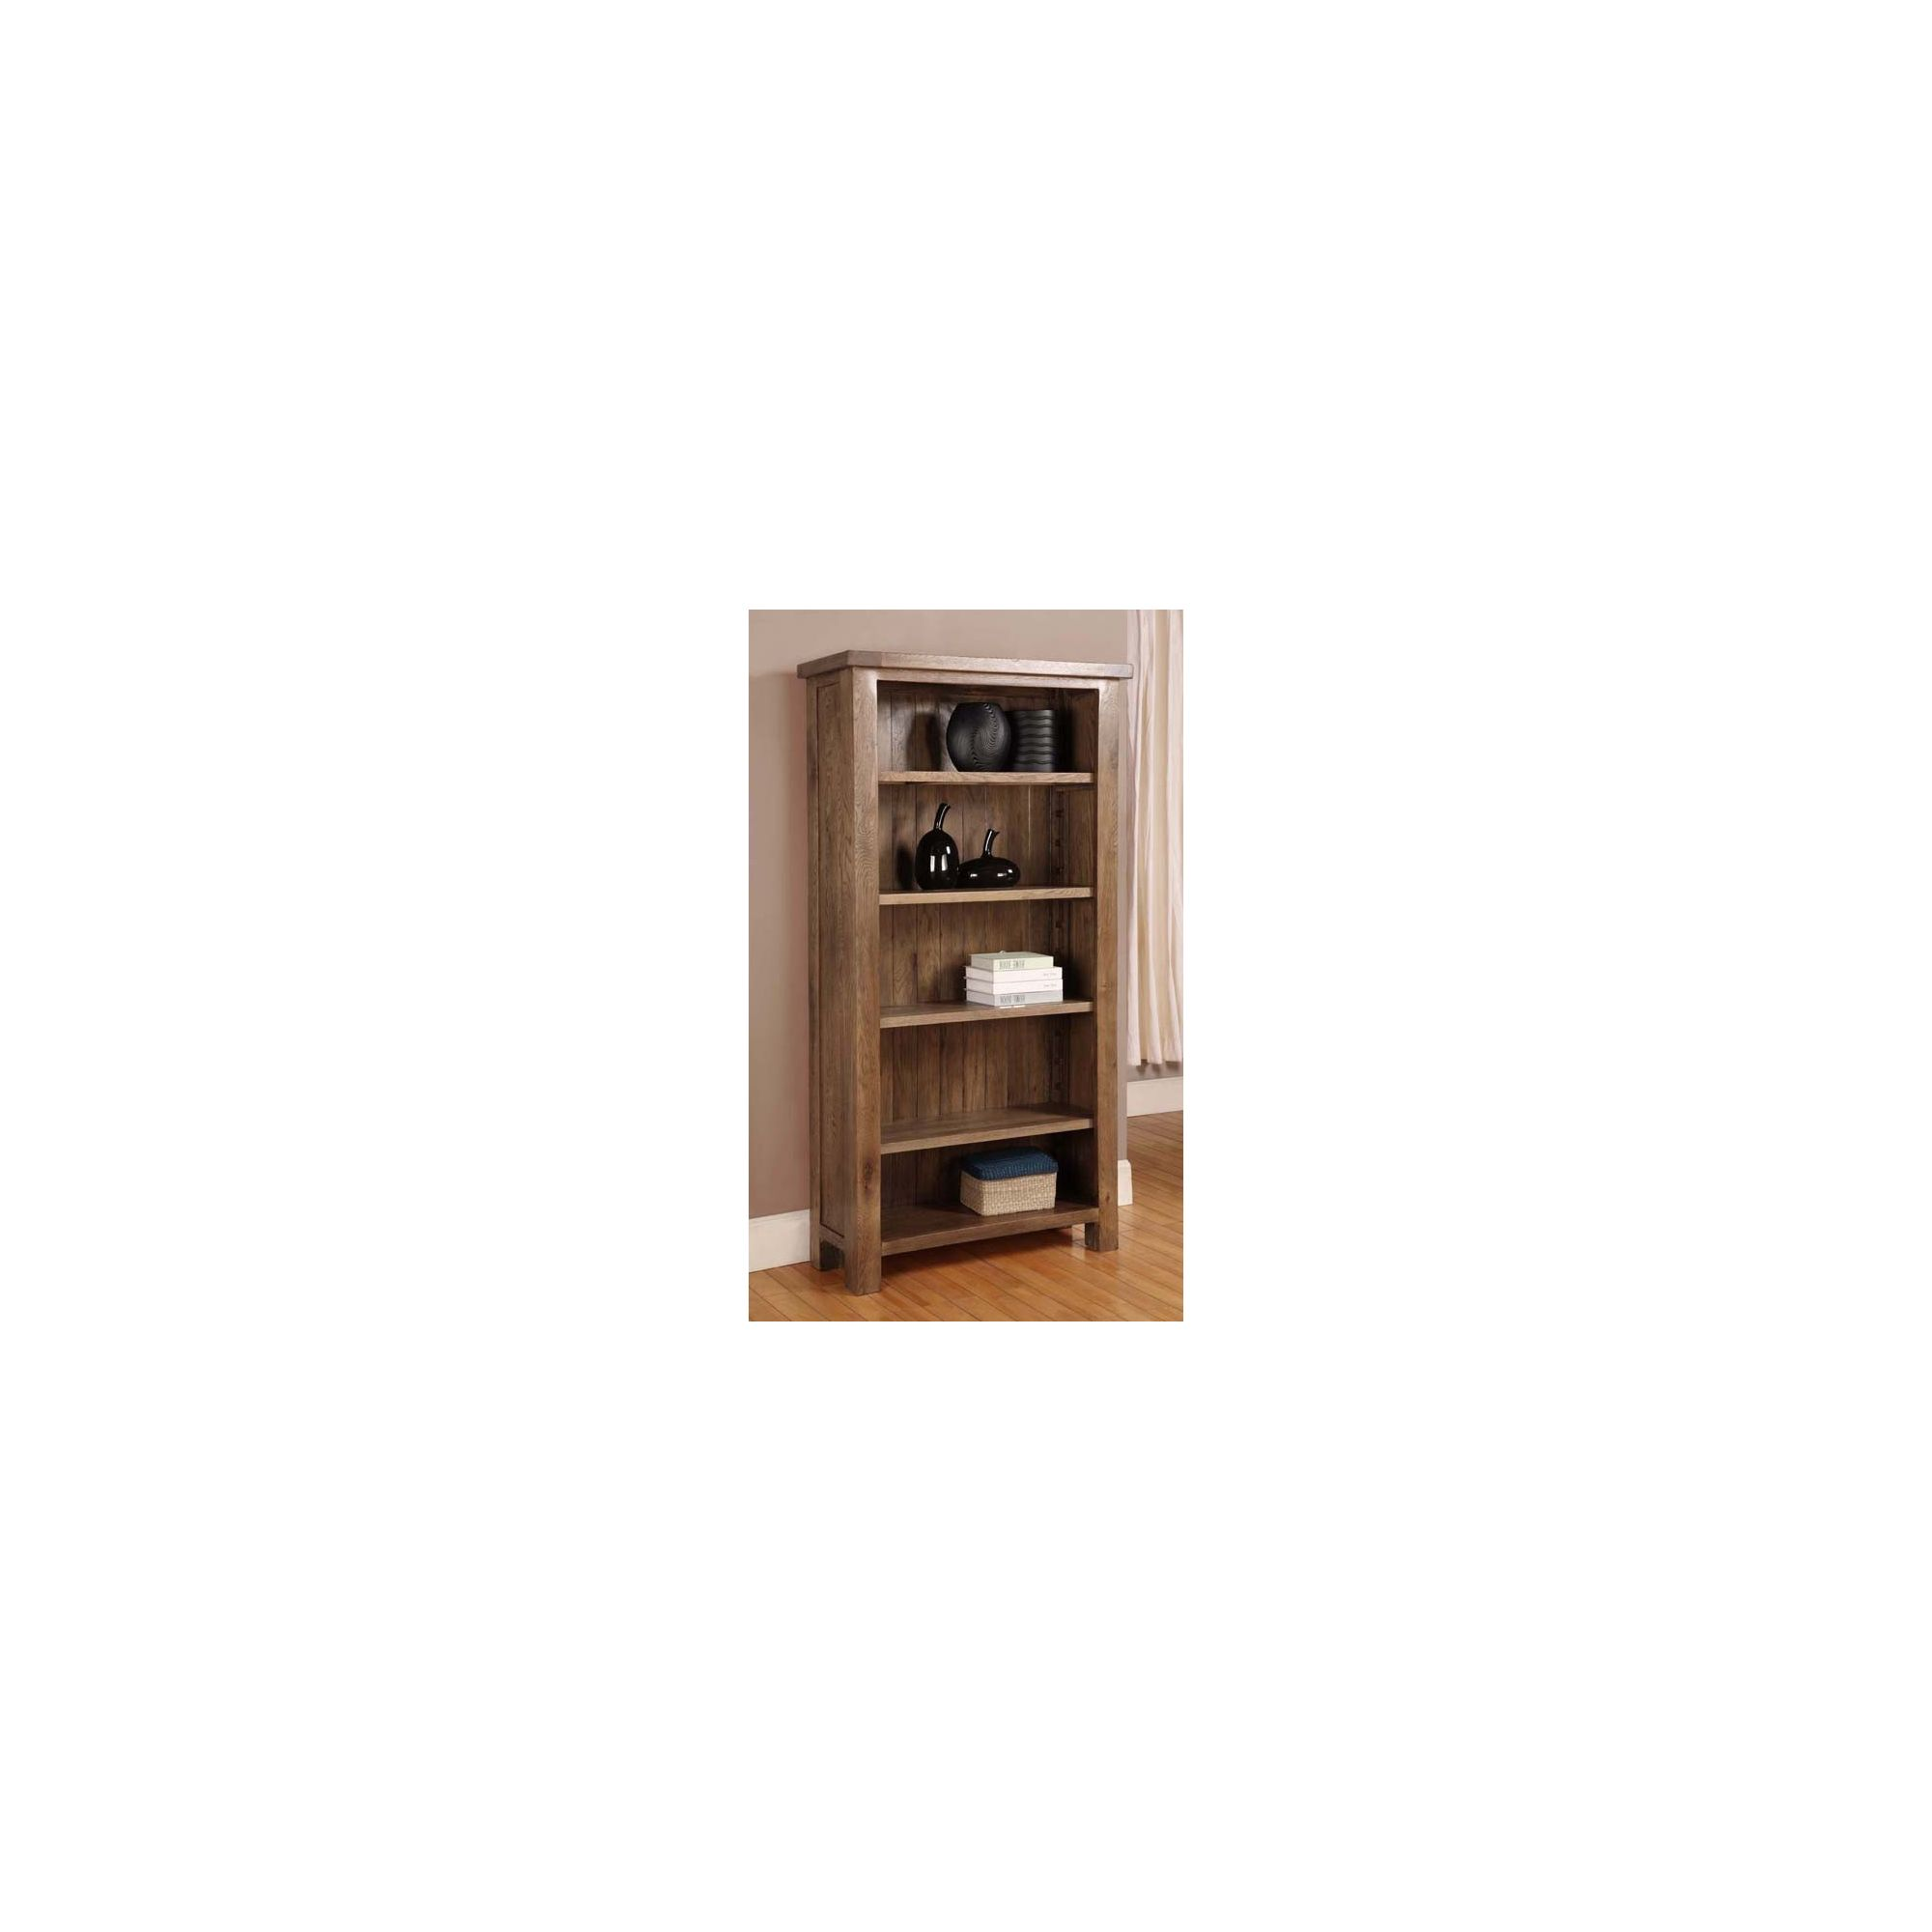 Hawkshead Brooklyn Tall Bookcase at Tesco Direct